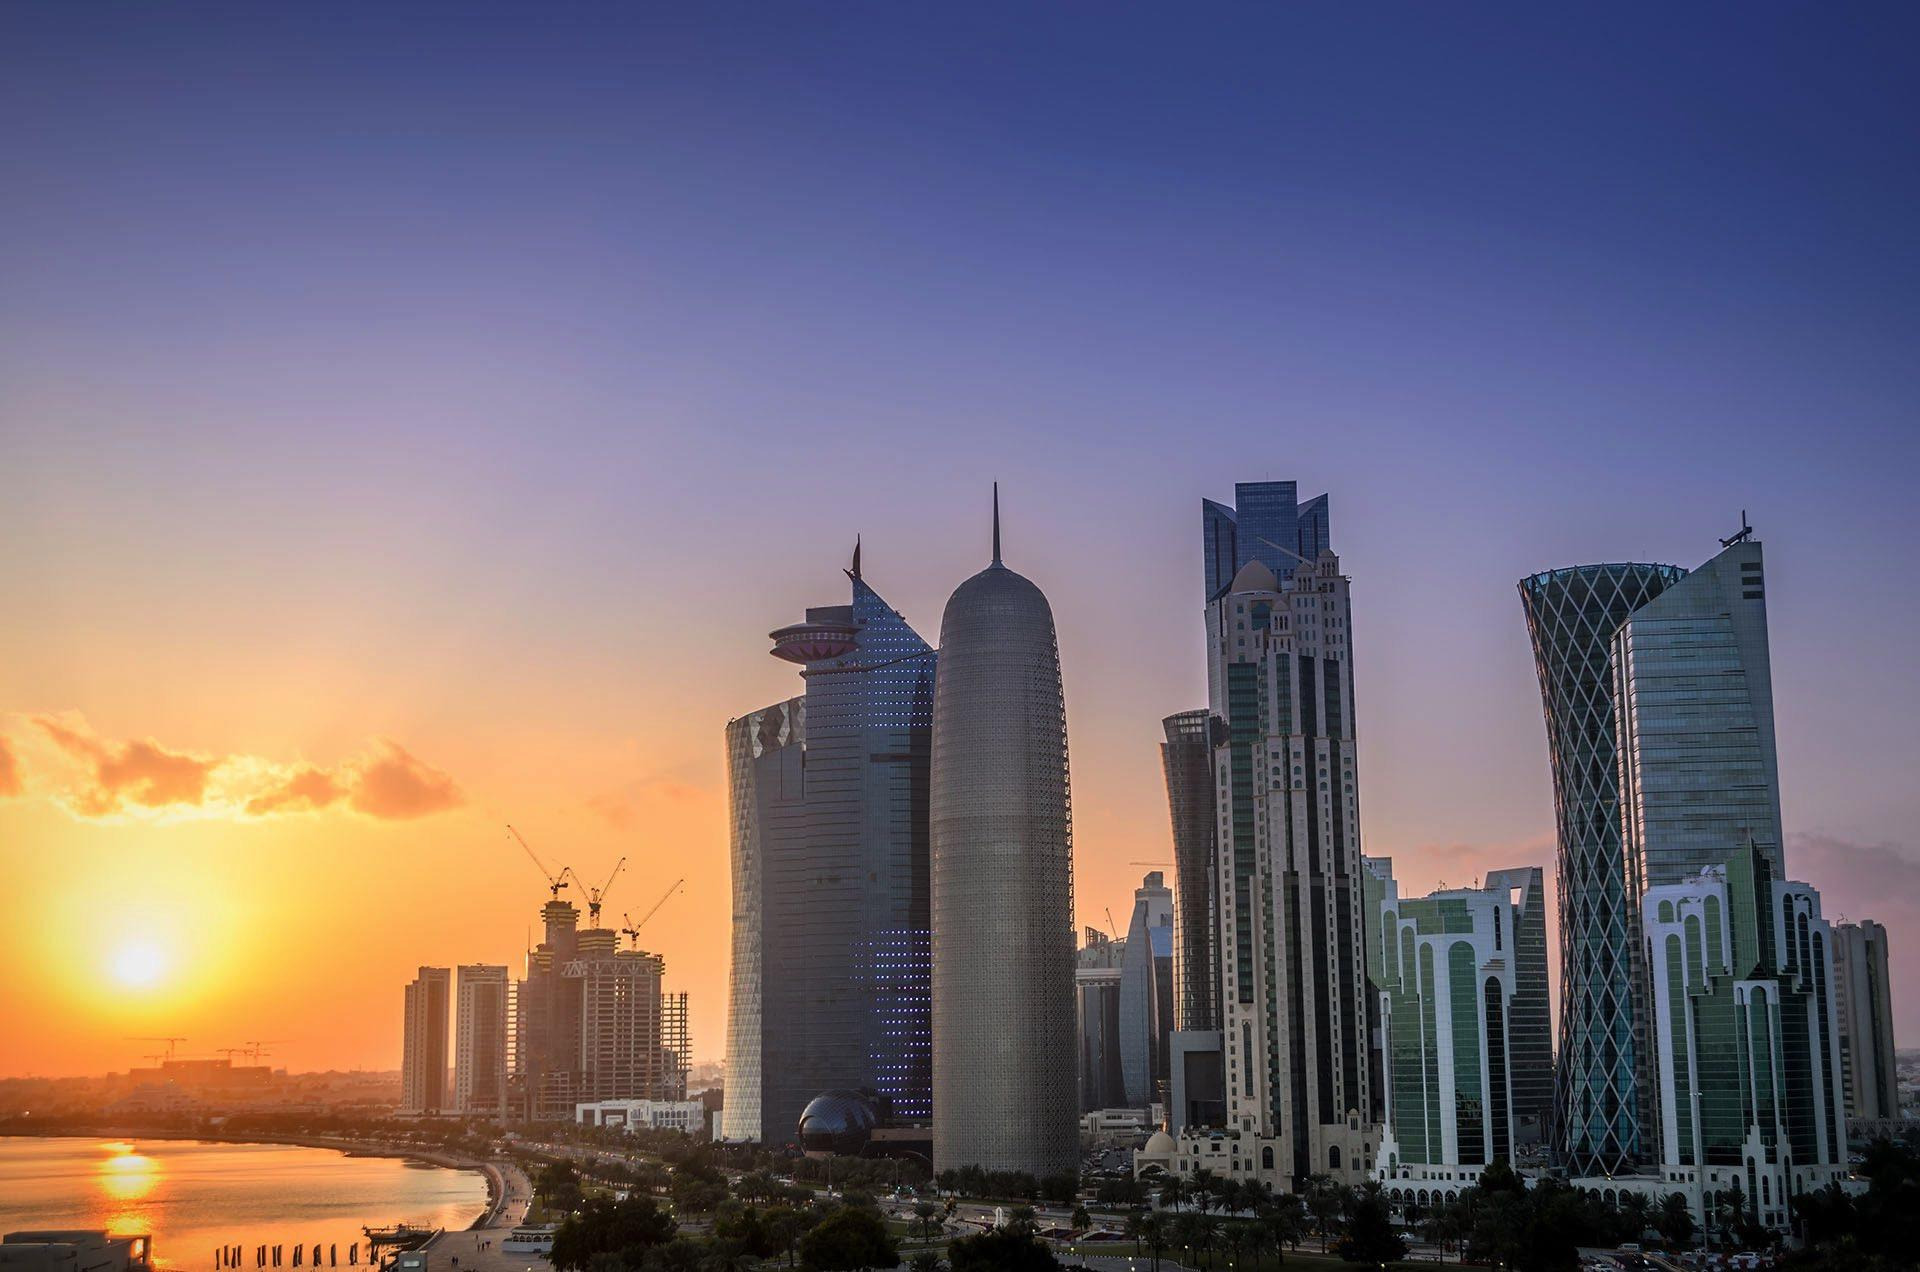 Doha sunset